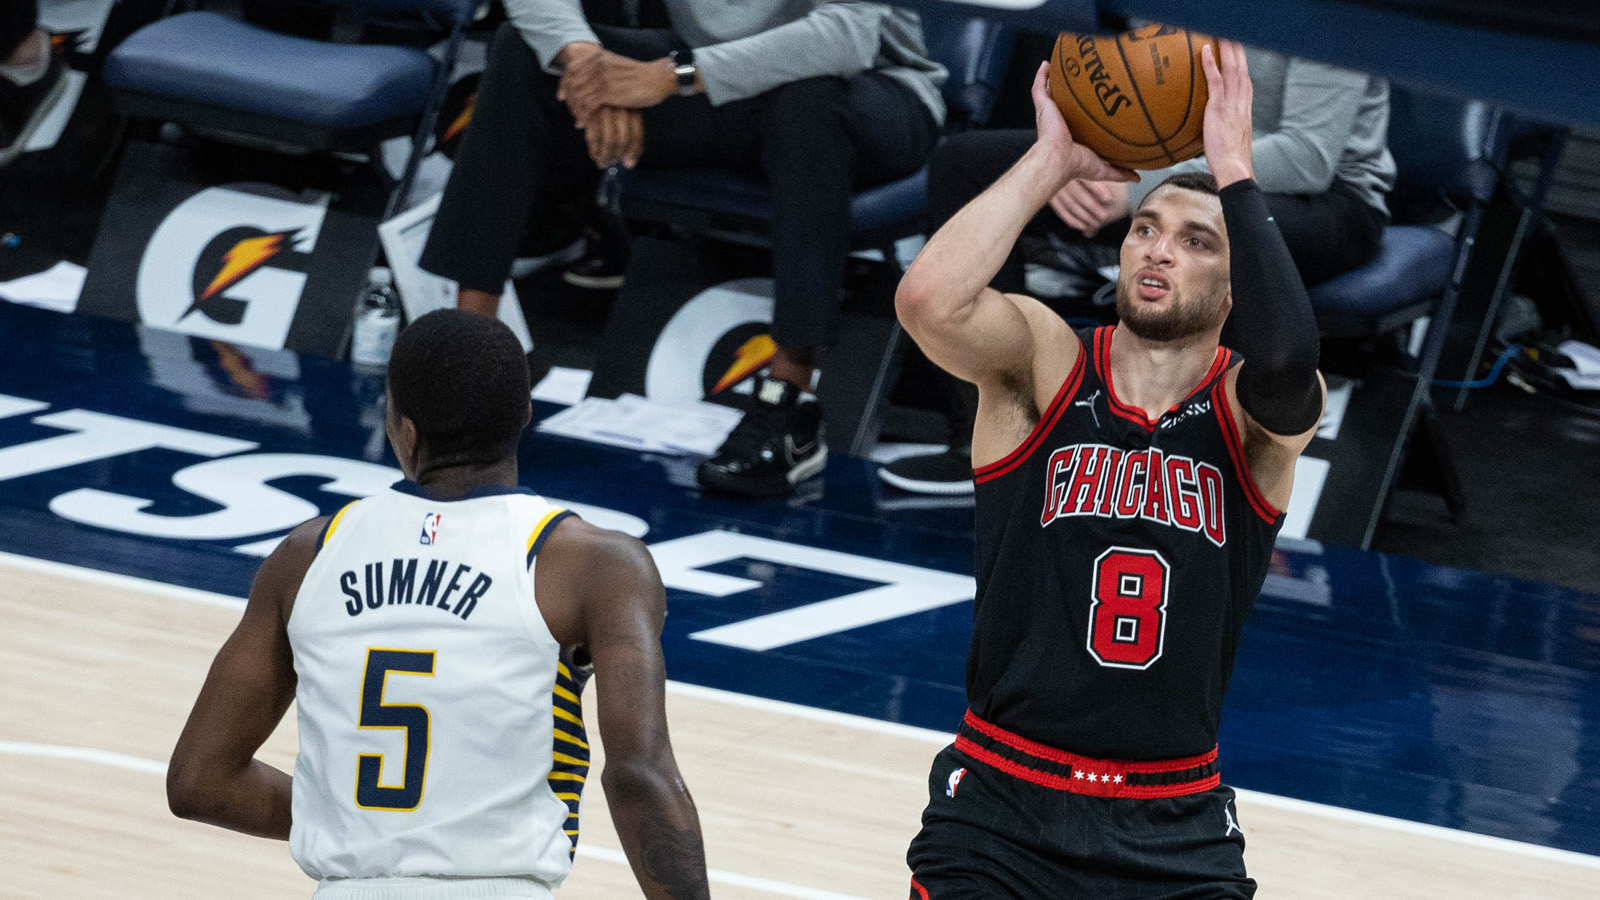 """I'm all about winning, and trying to get this team to be better so if that means me taking a lesser role some nights and my scoring goes down, I'm fine with that,'' the Bulls' Zach LaVine said."